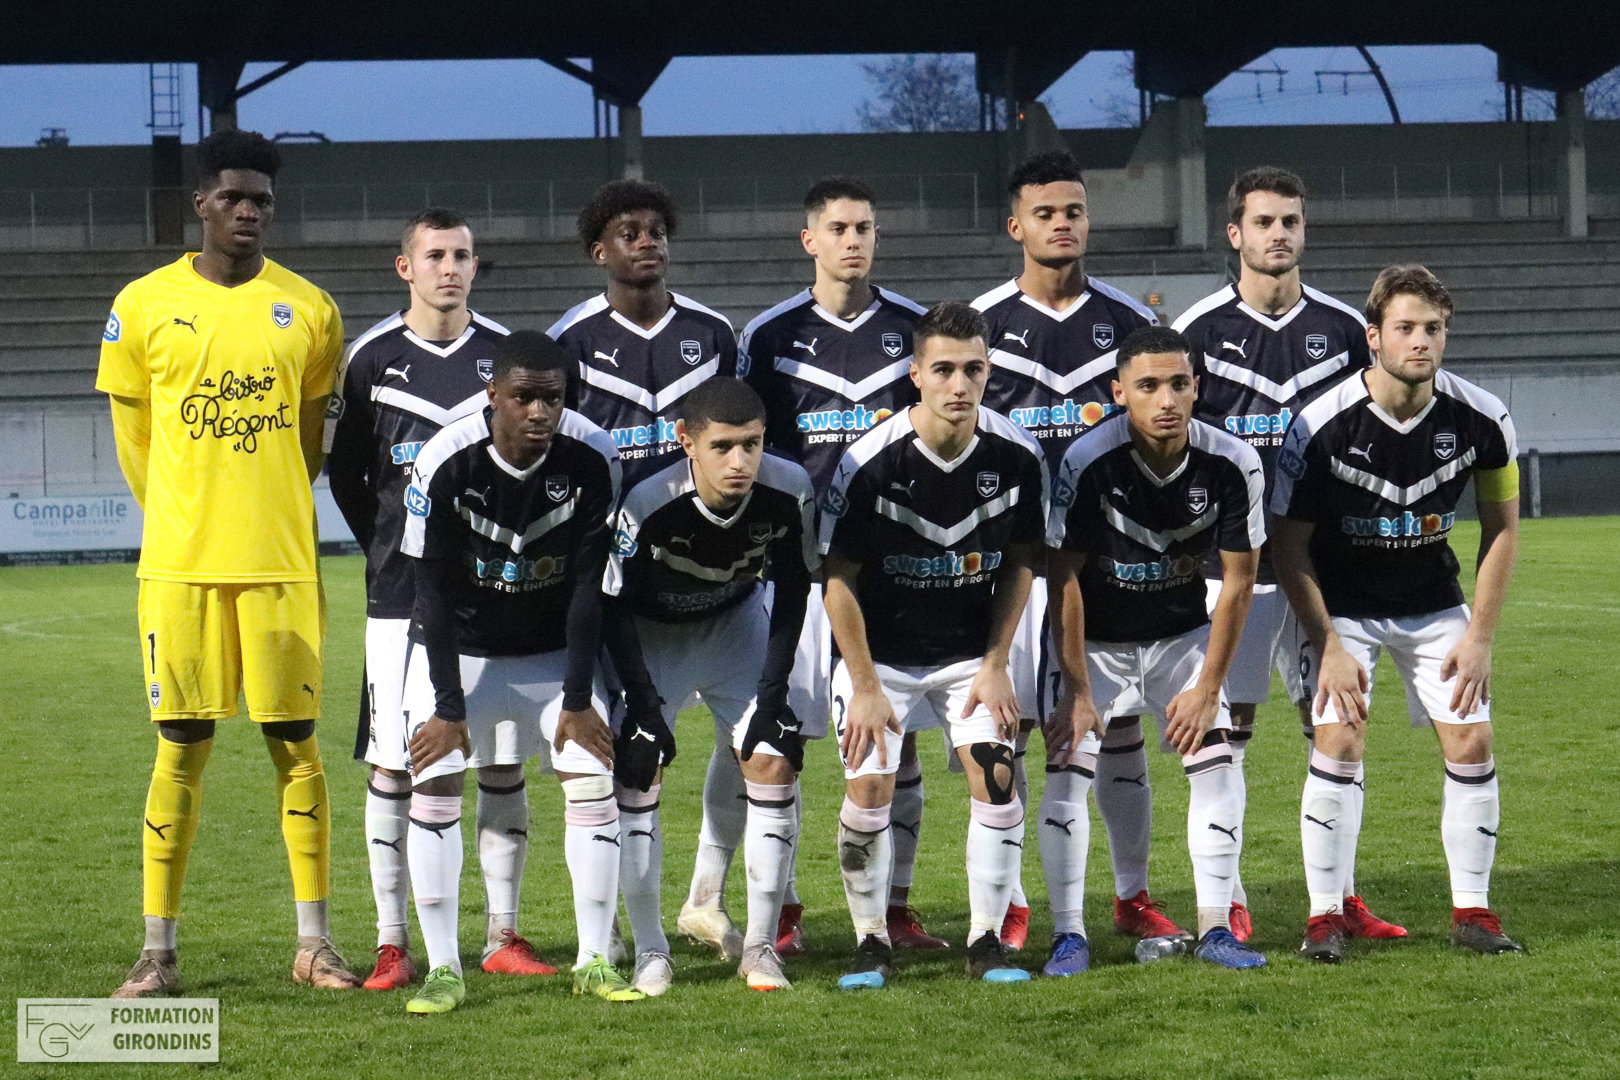 Cfa Girondins : Match en retard face au leader - Formation Girondins